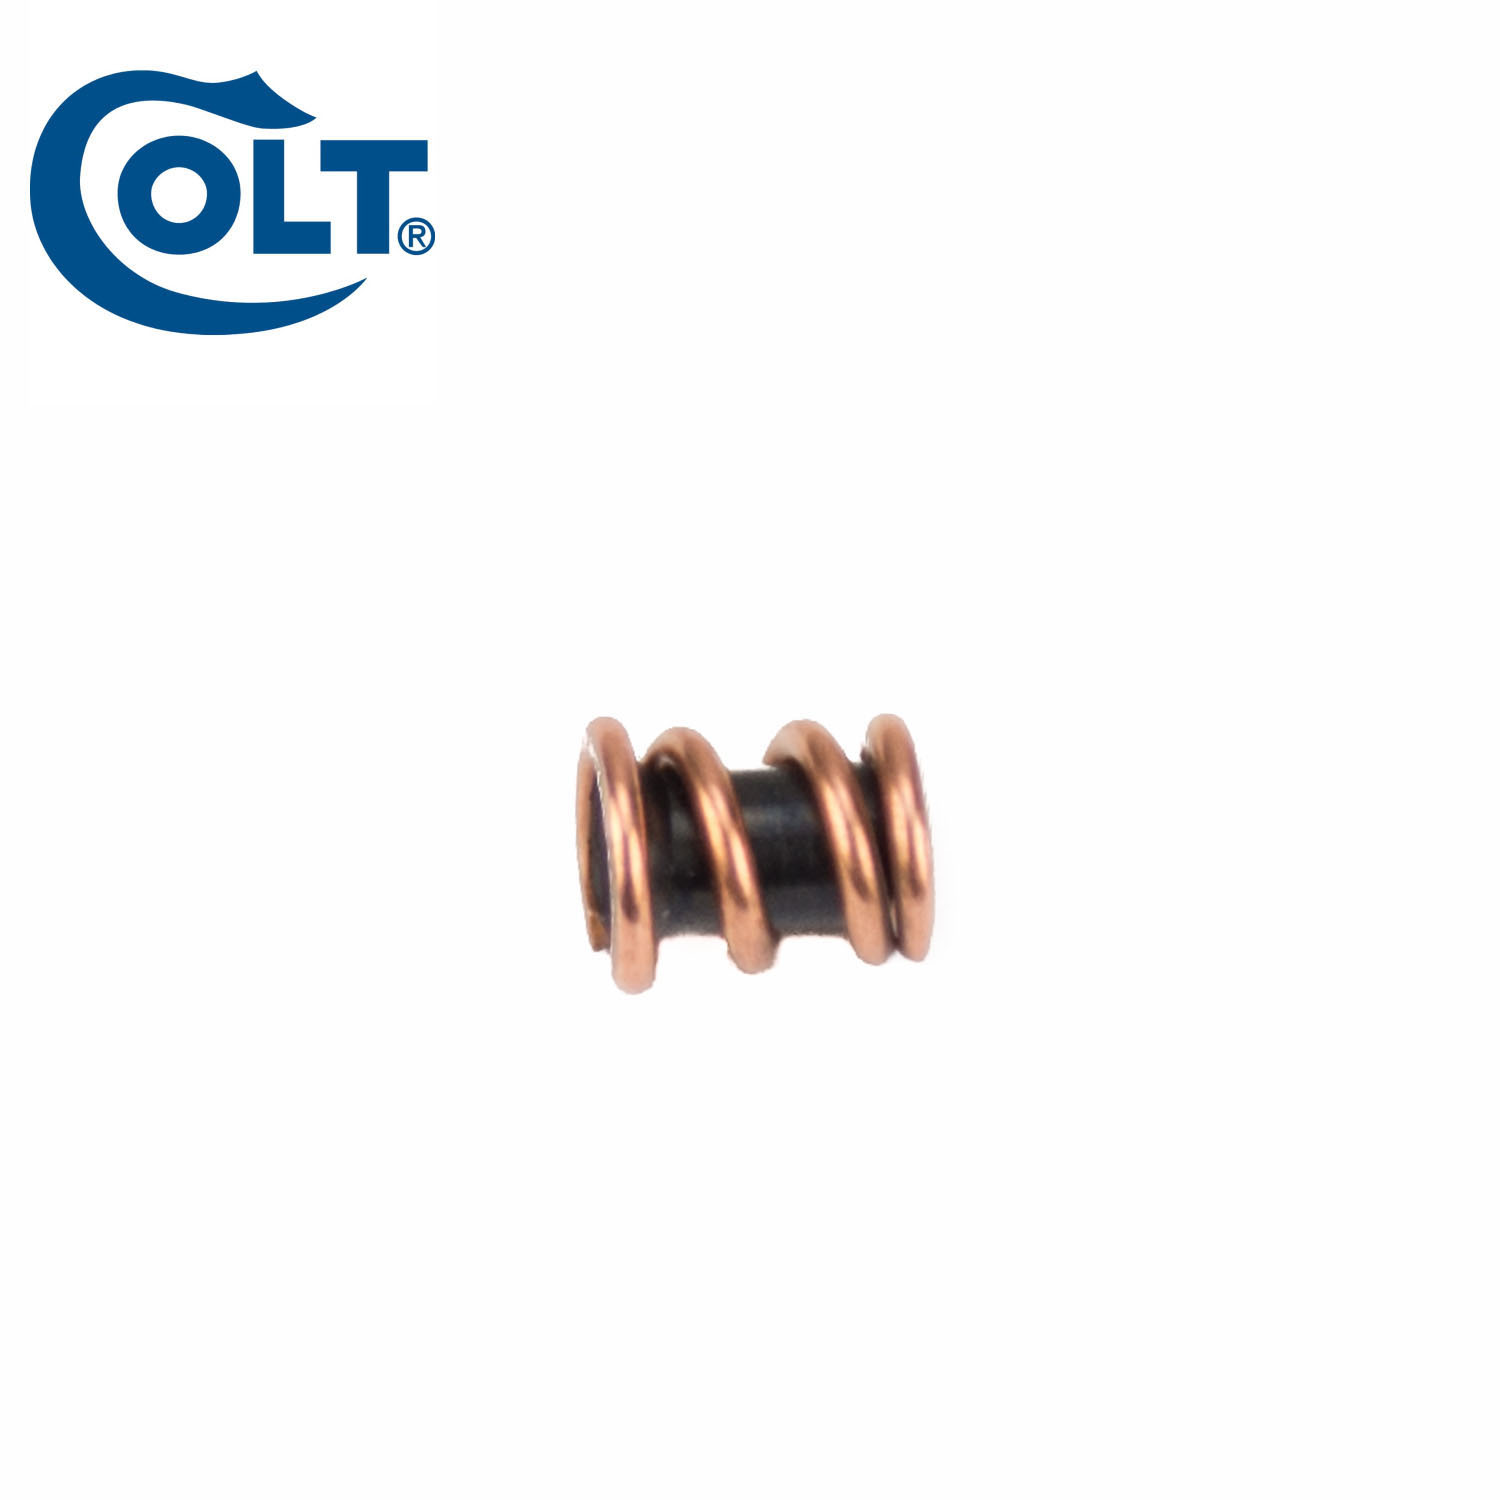 Colt Ar 15 Extractor Spring Assembly Mgw